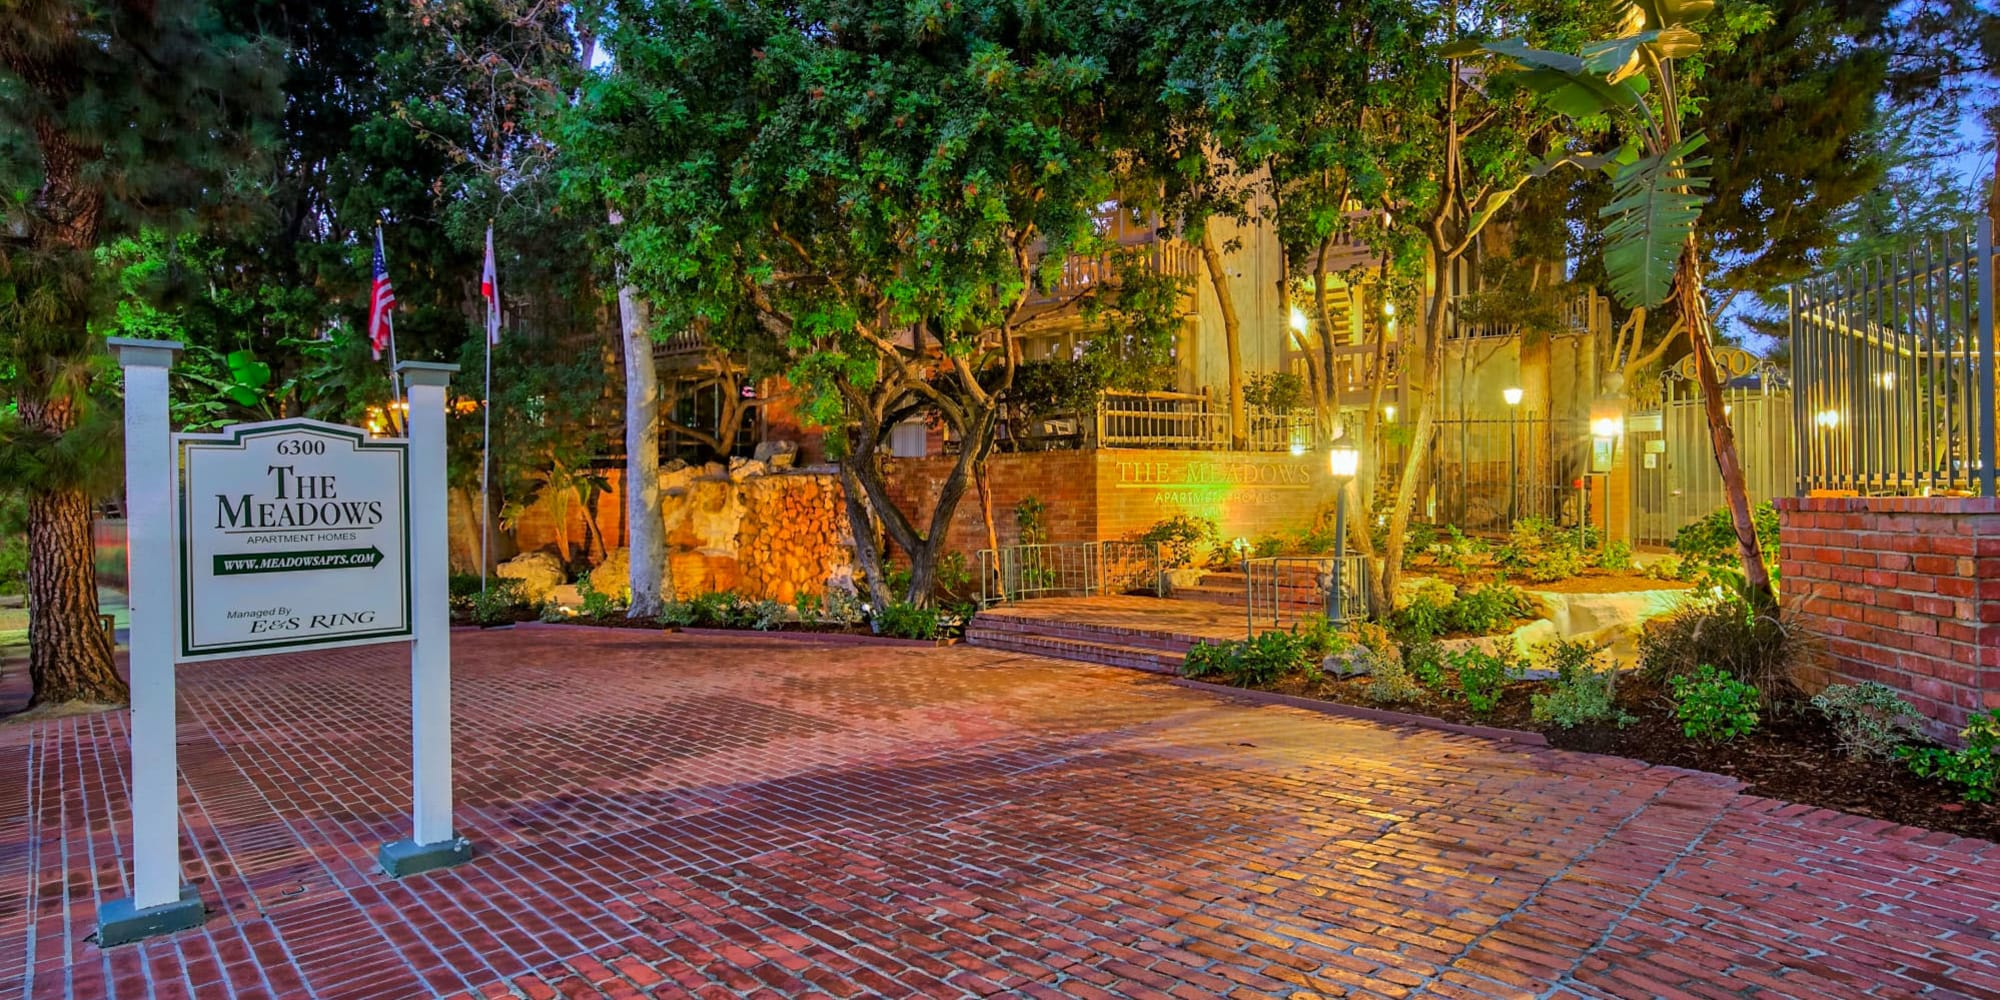 Brick pathway with a welcome sign leading up to one of the resident buildings at The Meadows in Culver City, California